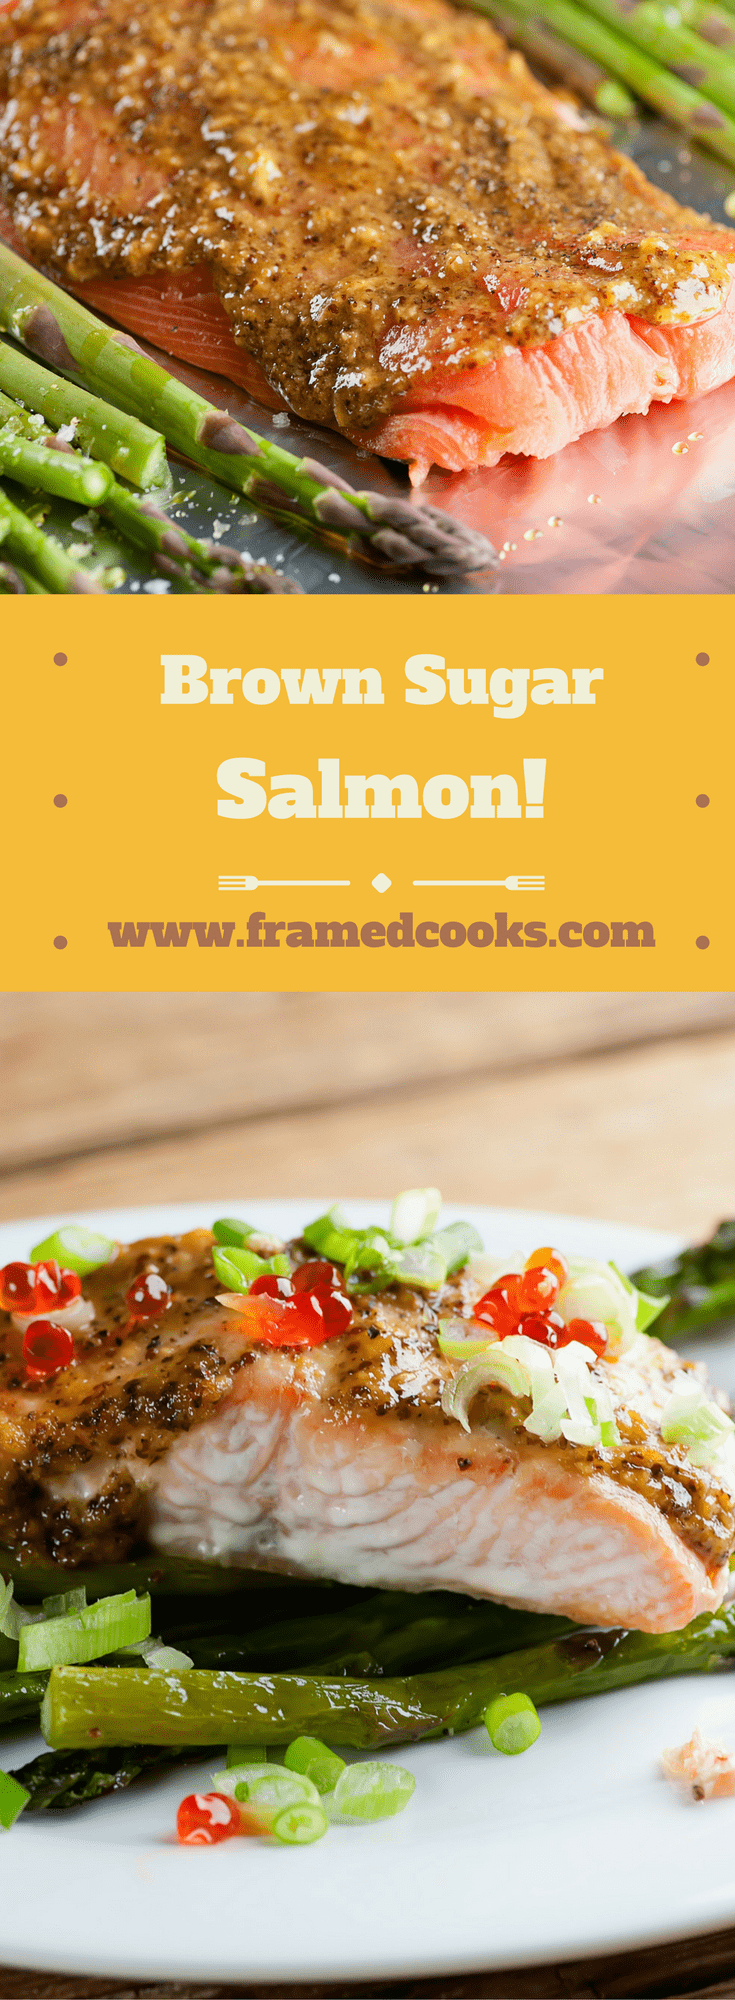 This easy recipe for brown sugar salmon takes just a little bit of sweetness and makes it go a long way.  Get ready for them to ask for seafood seconds!